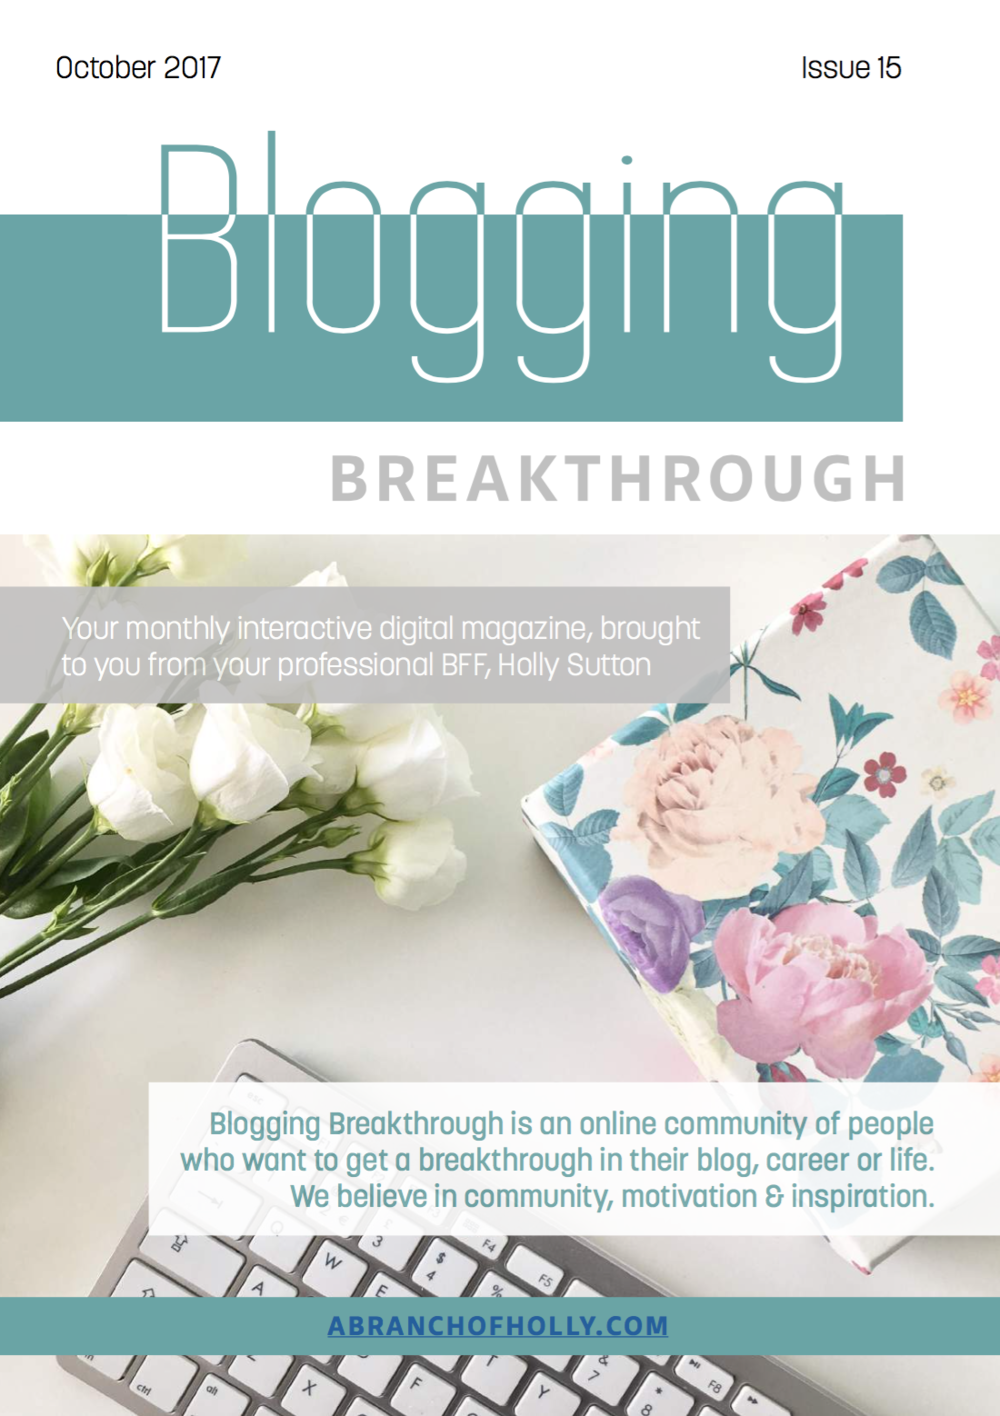 blogging breakthrough October 2018 issue 15